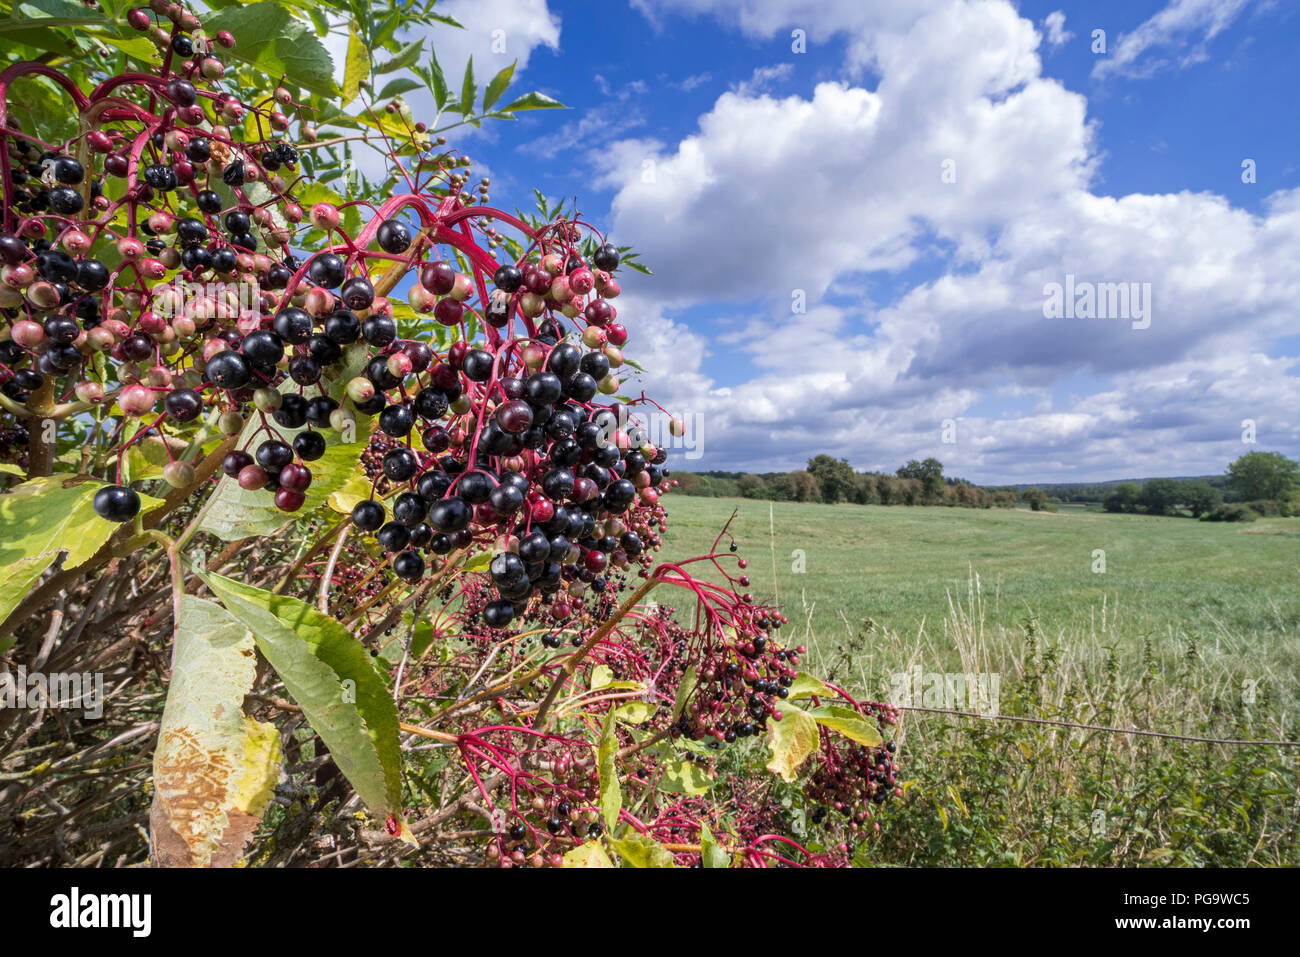 European elder / European elderberry (Sambucus nigra) showing drooping fruit clusters of black berries in summer / autumn - Stock Image